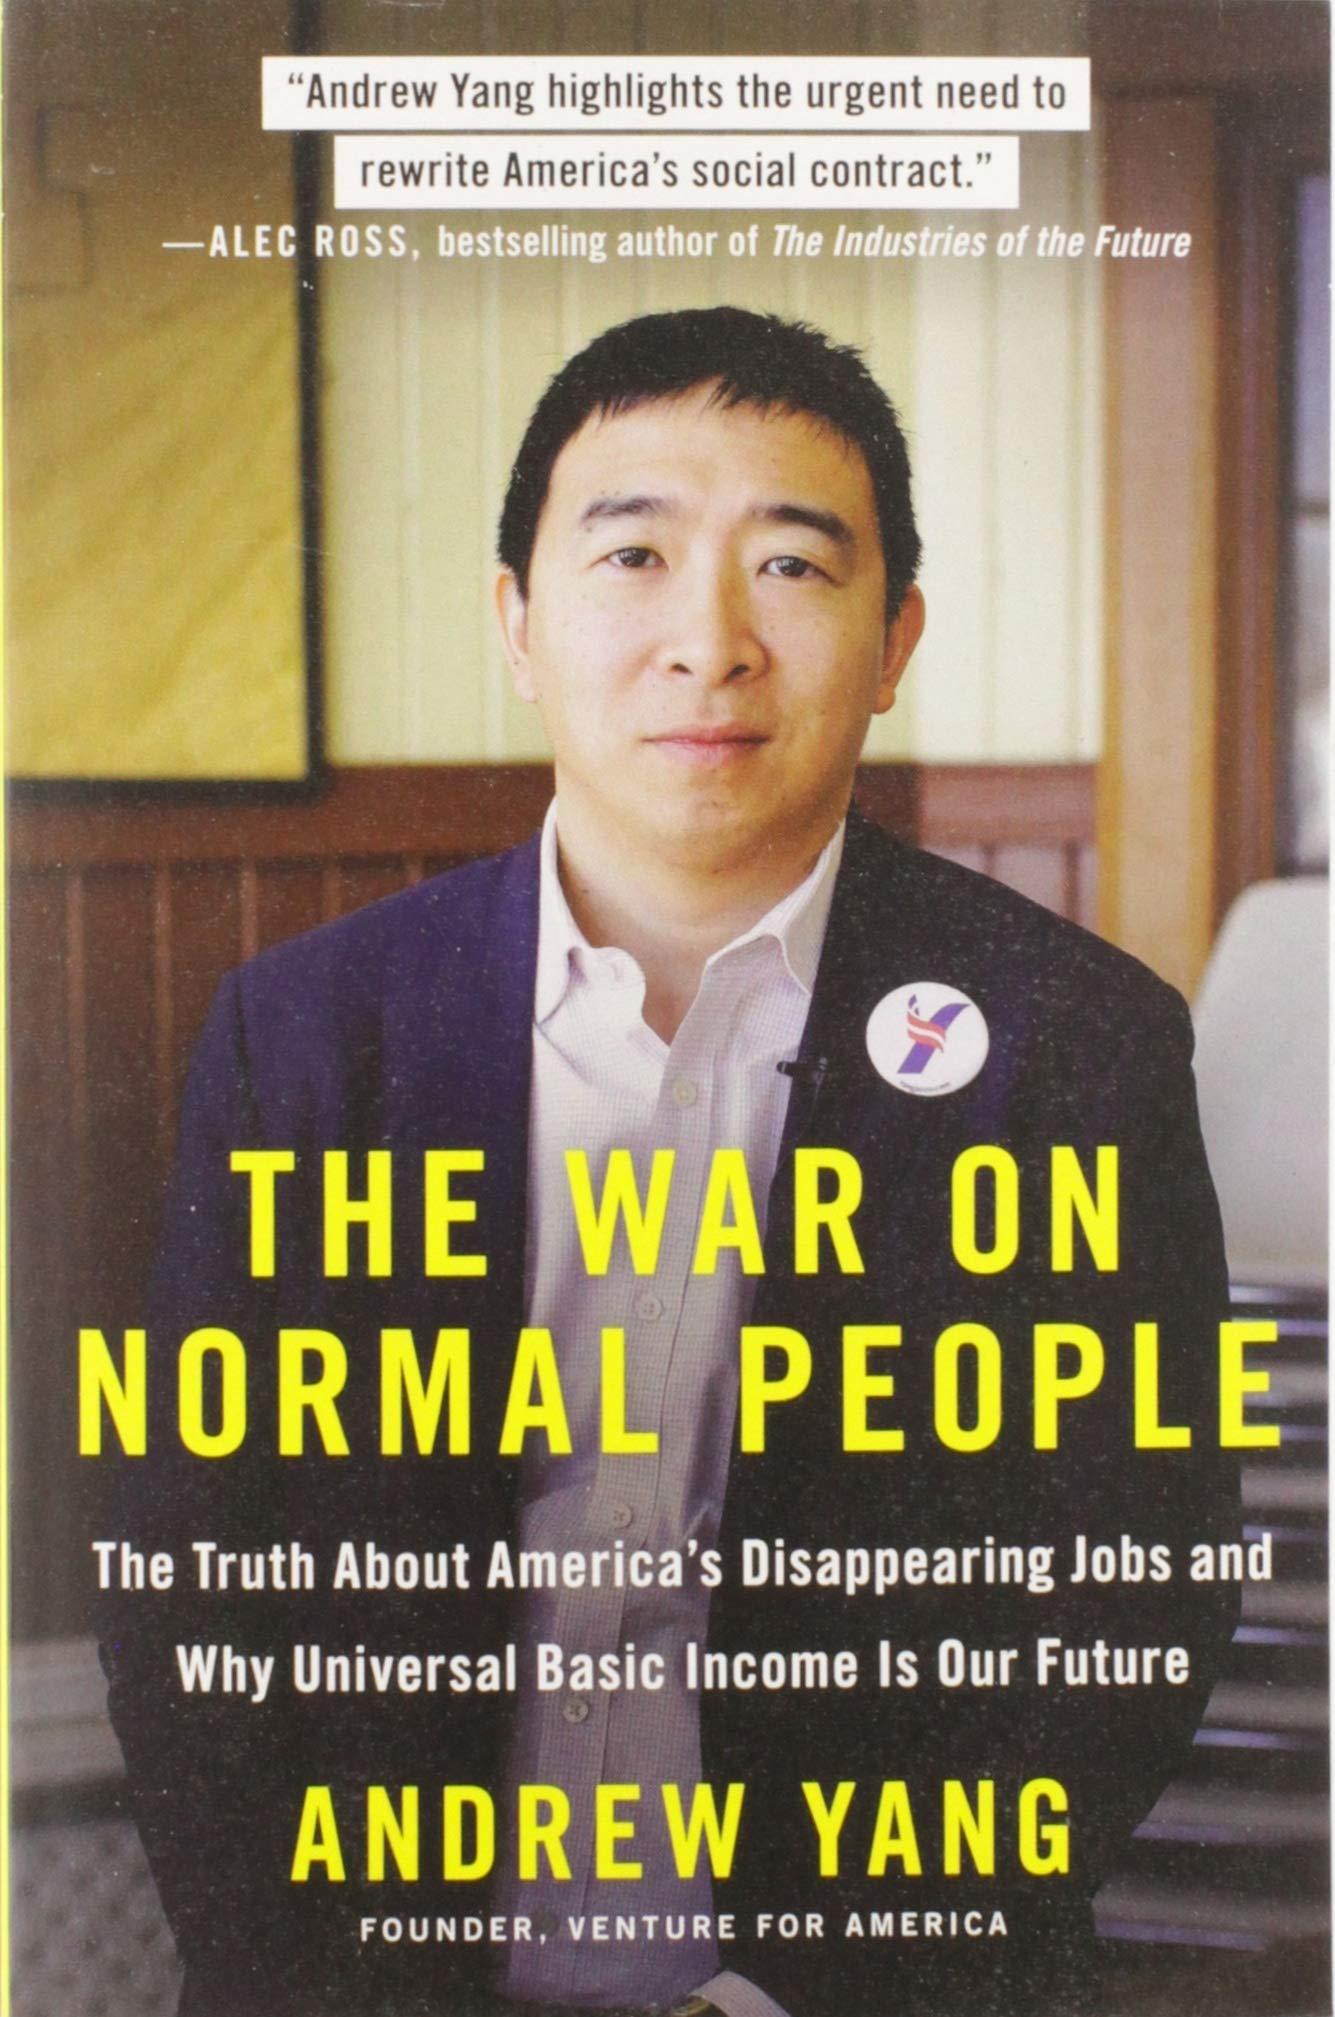 The War On Normal People  The Truth About America's Disappearing Jobs And Why Universal Basic Income Is Our Future